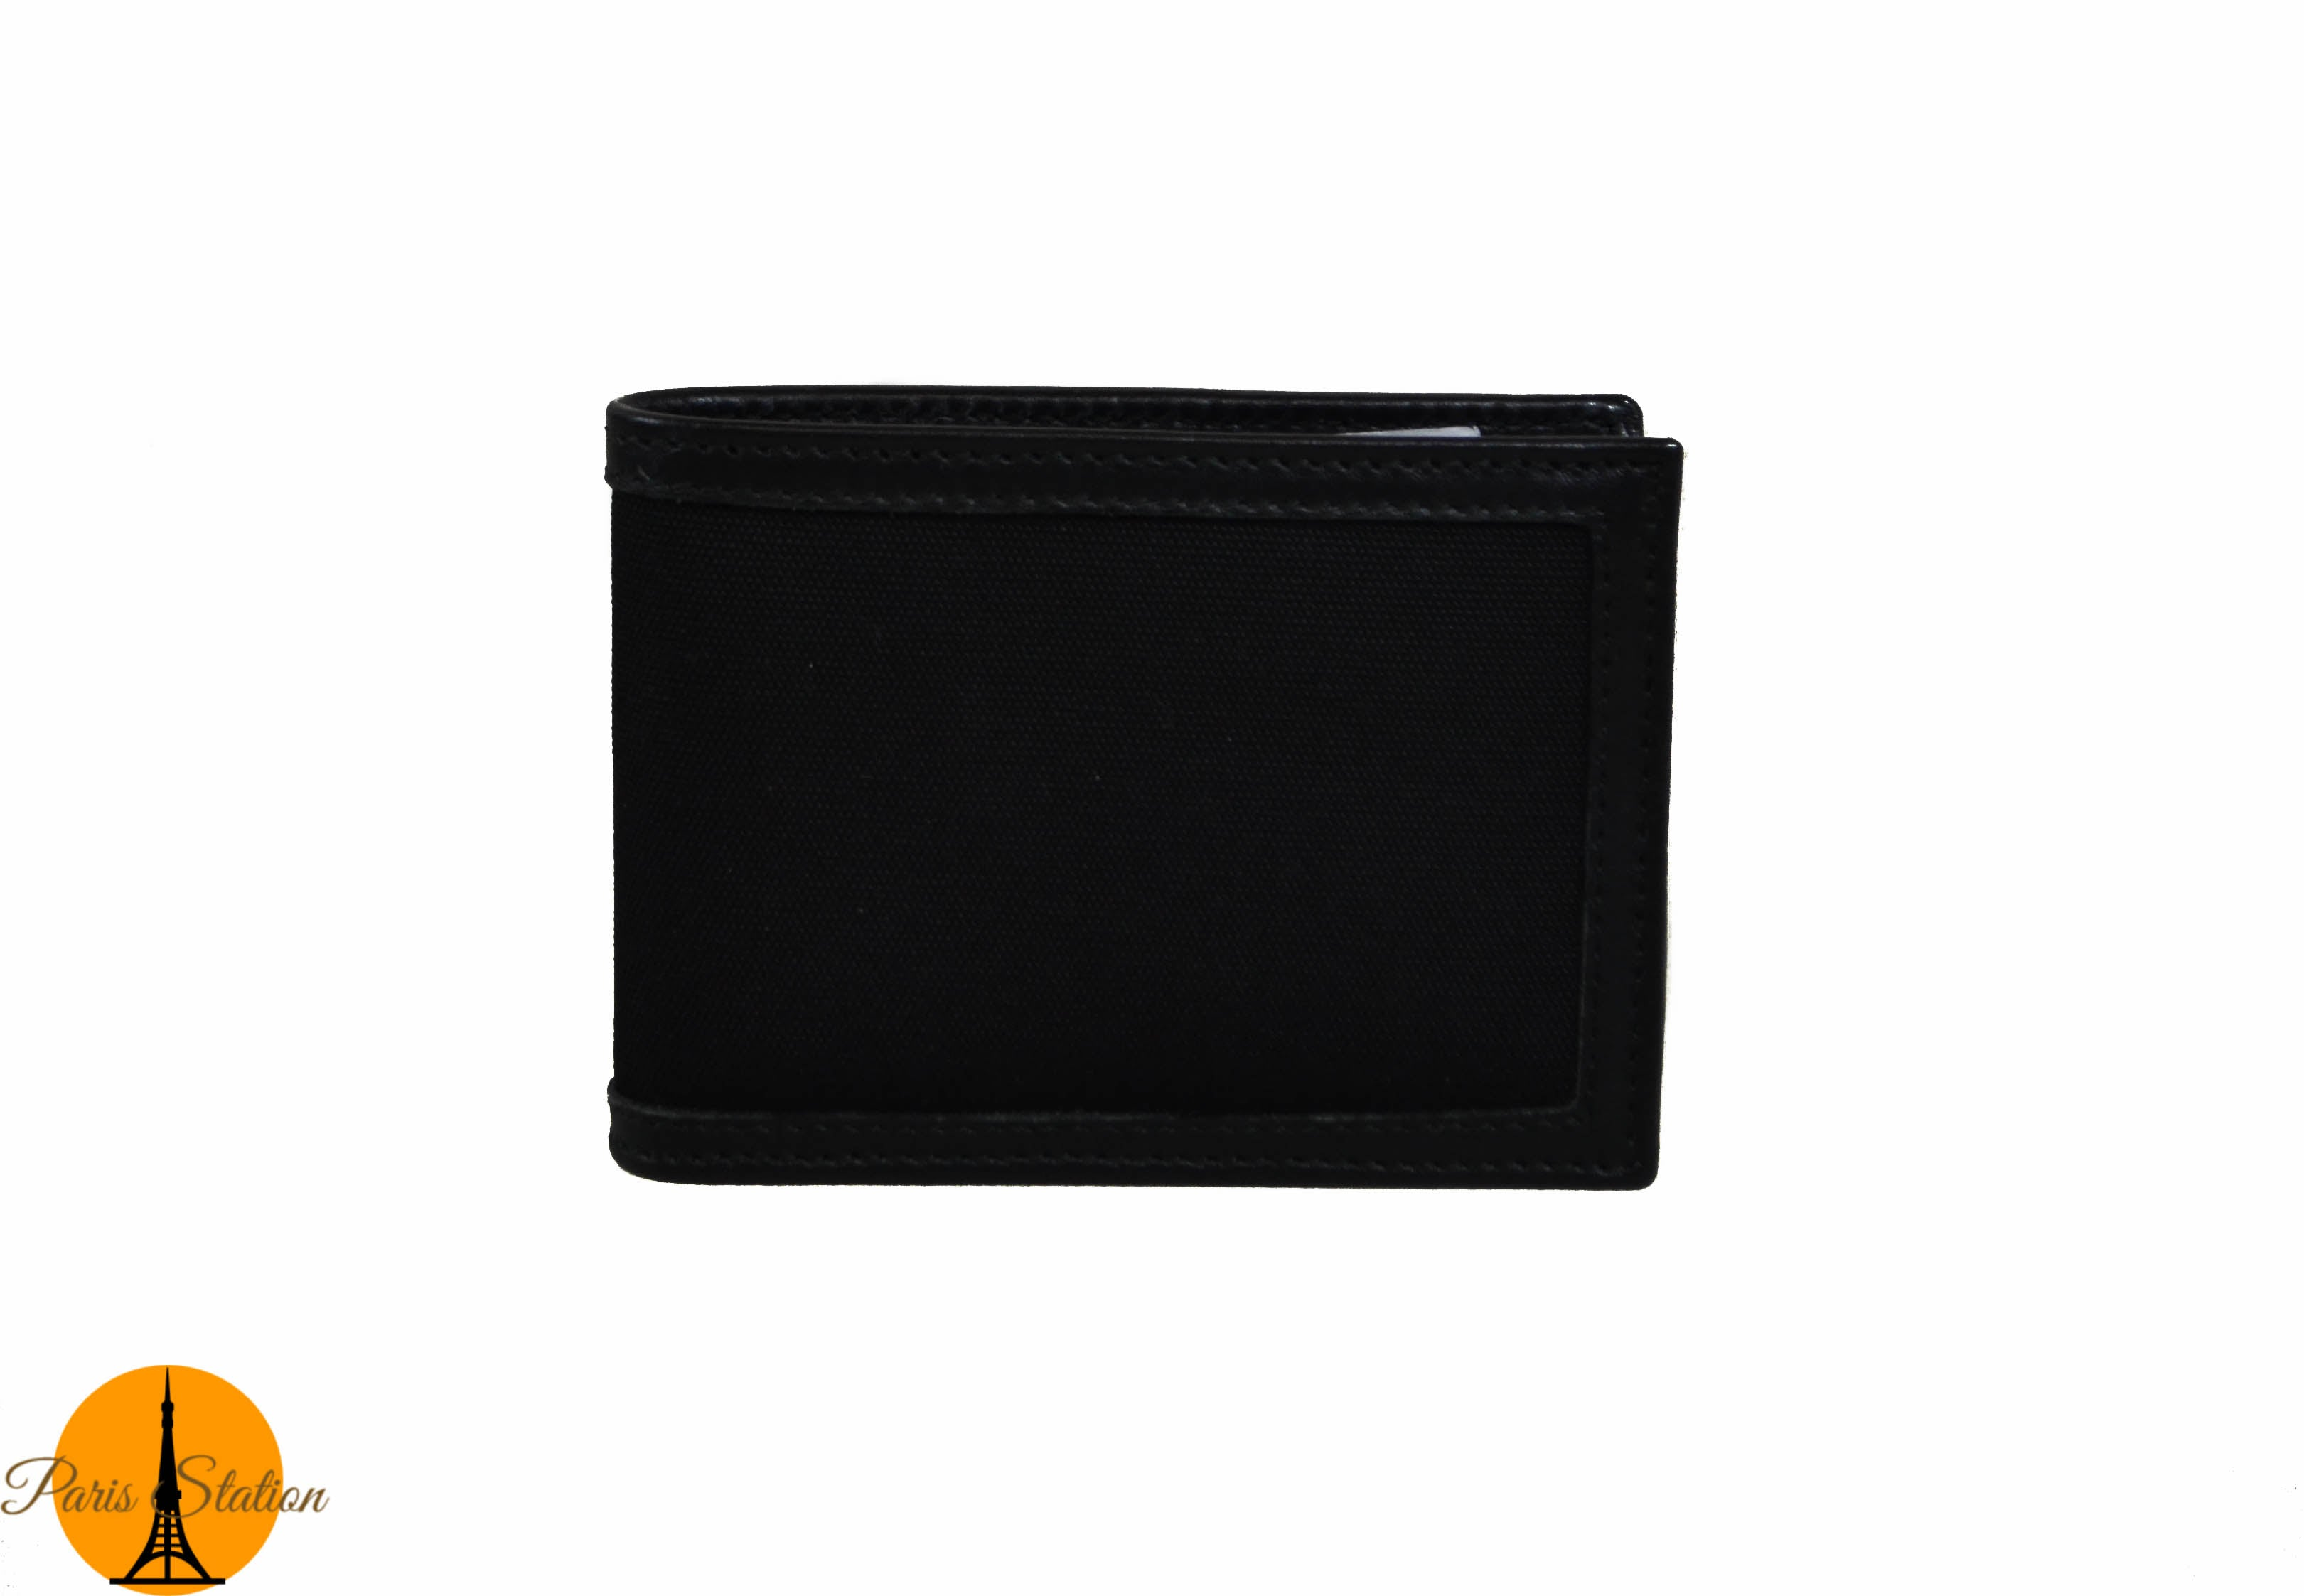 Authentic NEW Gucci Black Canvas Bi-Fold Men's Wallet 233157